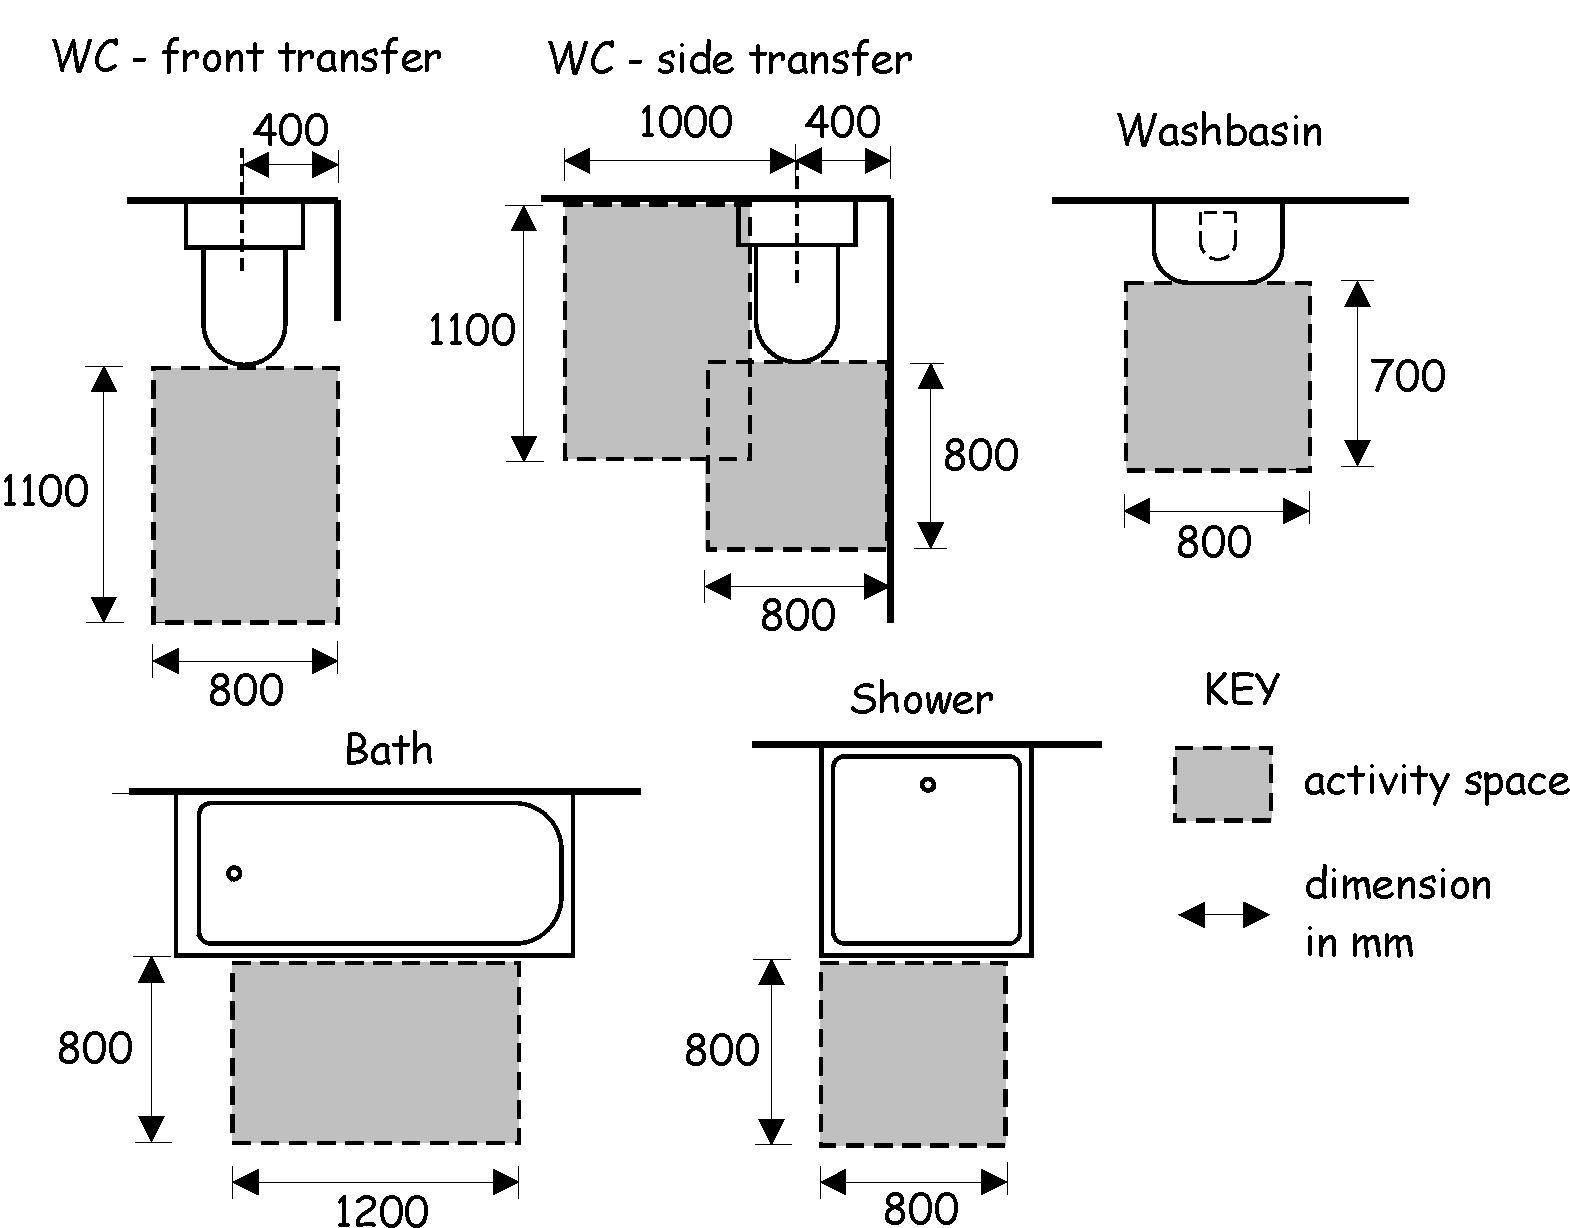 Bathroom layout dimensions - Latest Posts Under Bathroom Dimensions